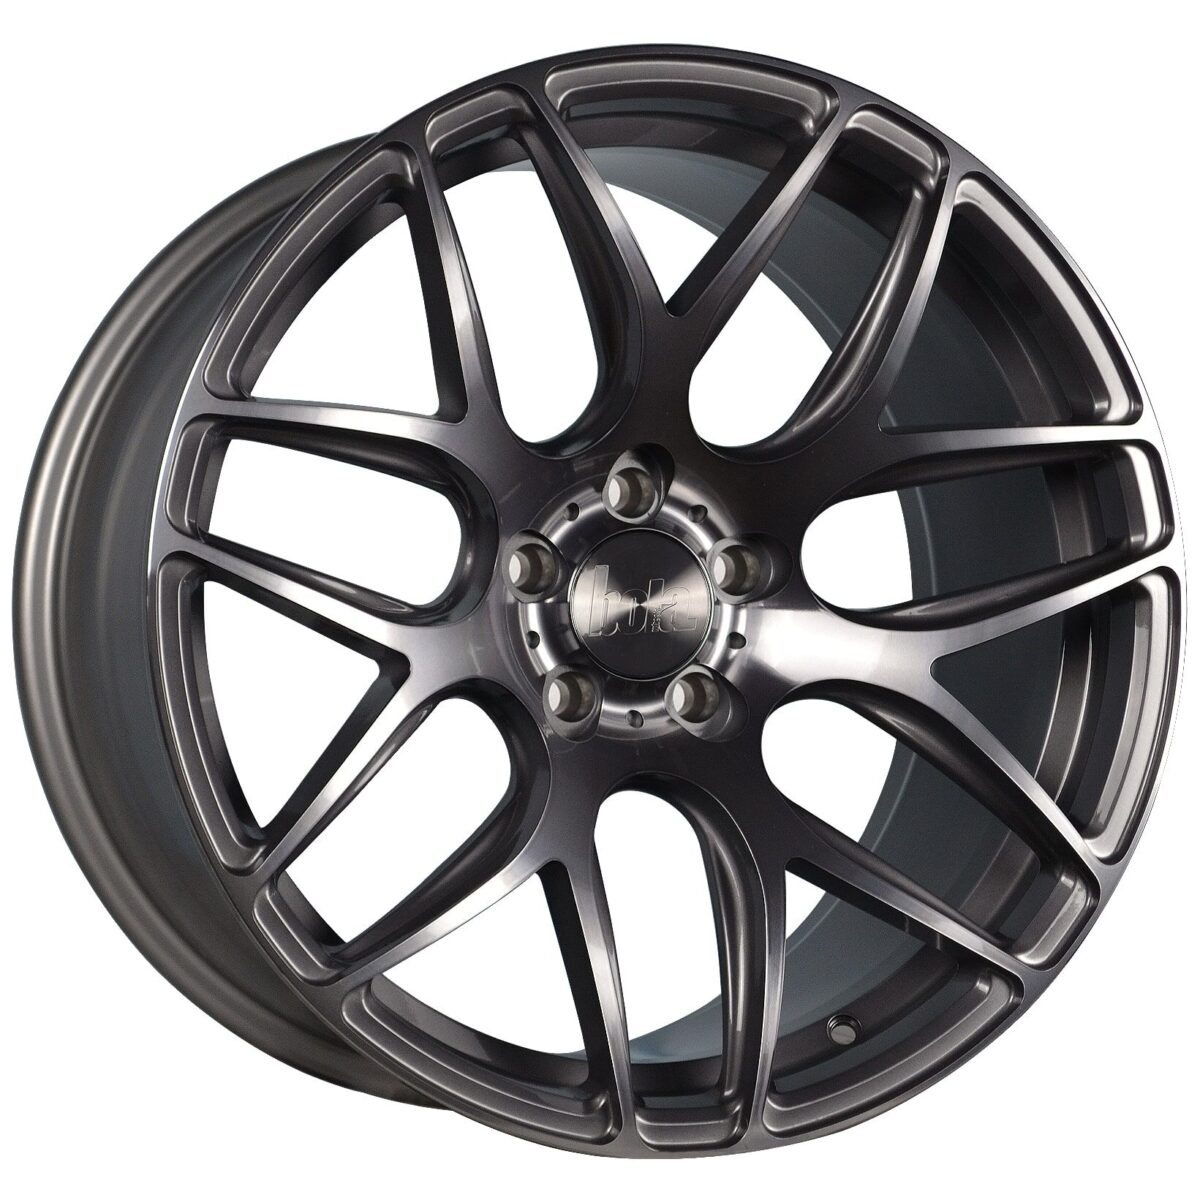 "18"" BOLA B8R Wheels - Gloss Titanium - VW / Audi / Mercedes - 5x112"